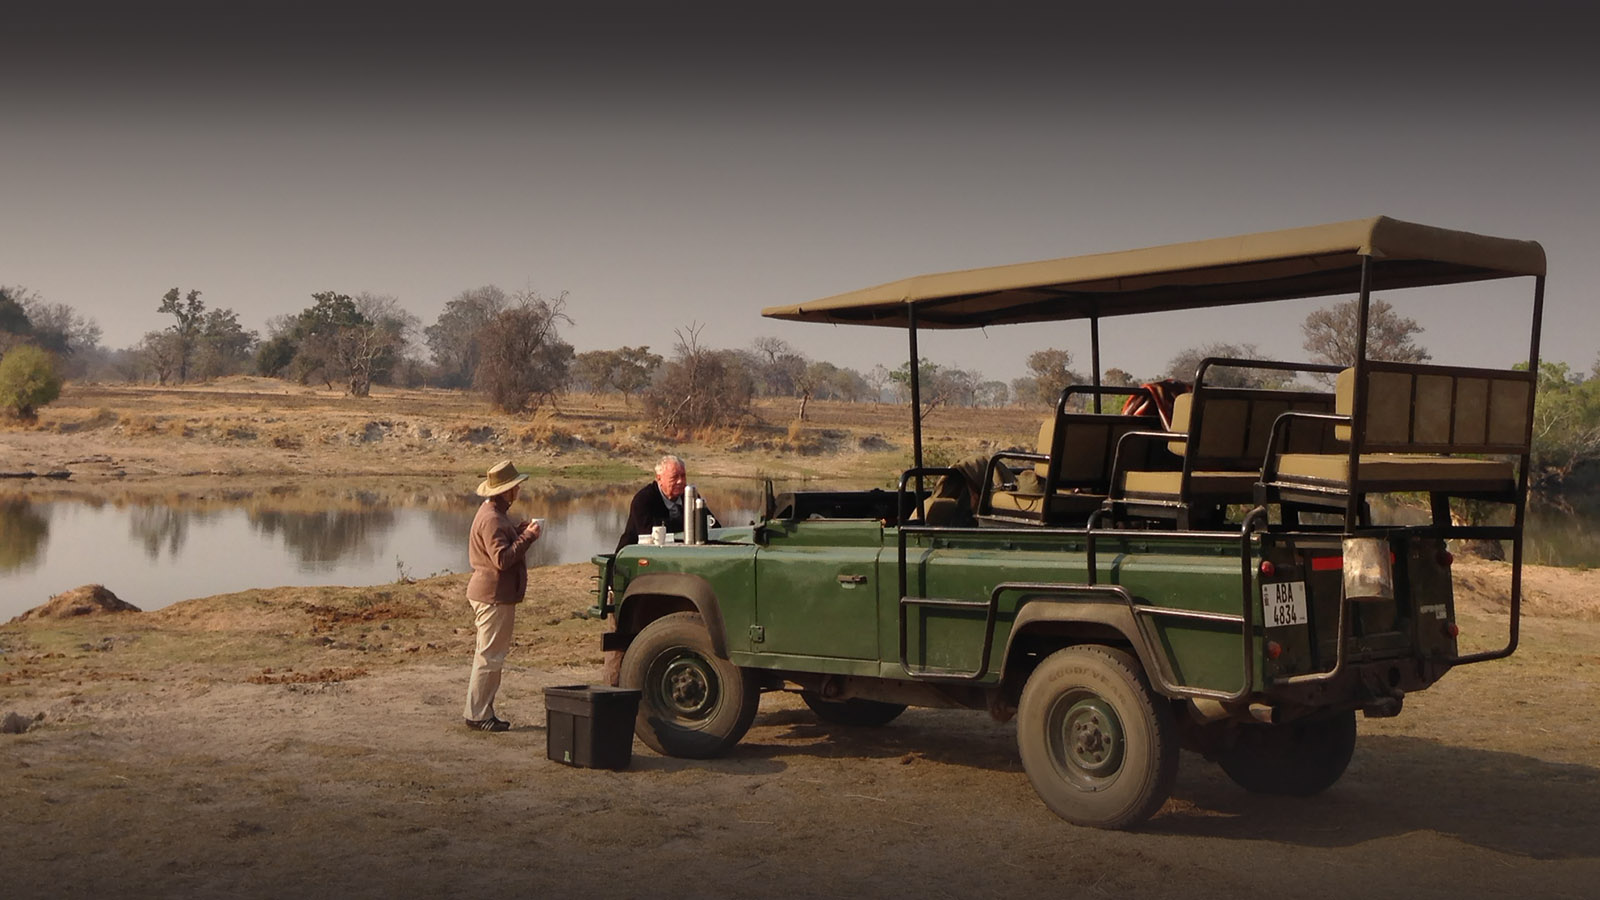 musekese camp lodge-zambia-in-style-safari-packages-lodges-kafue-national-park-chalets-conservation-game-drive-landscape